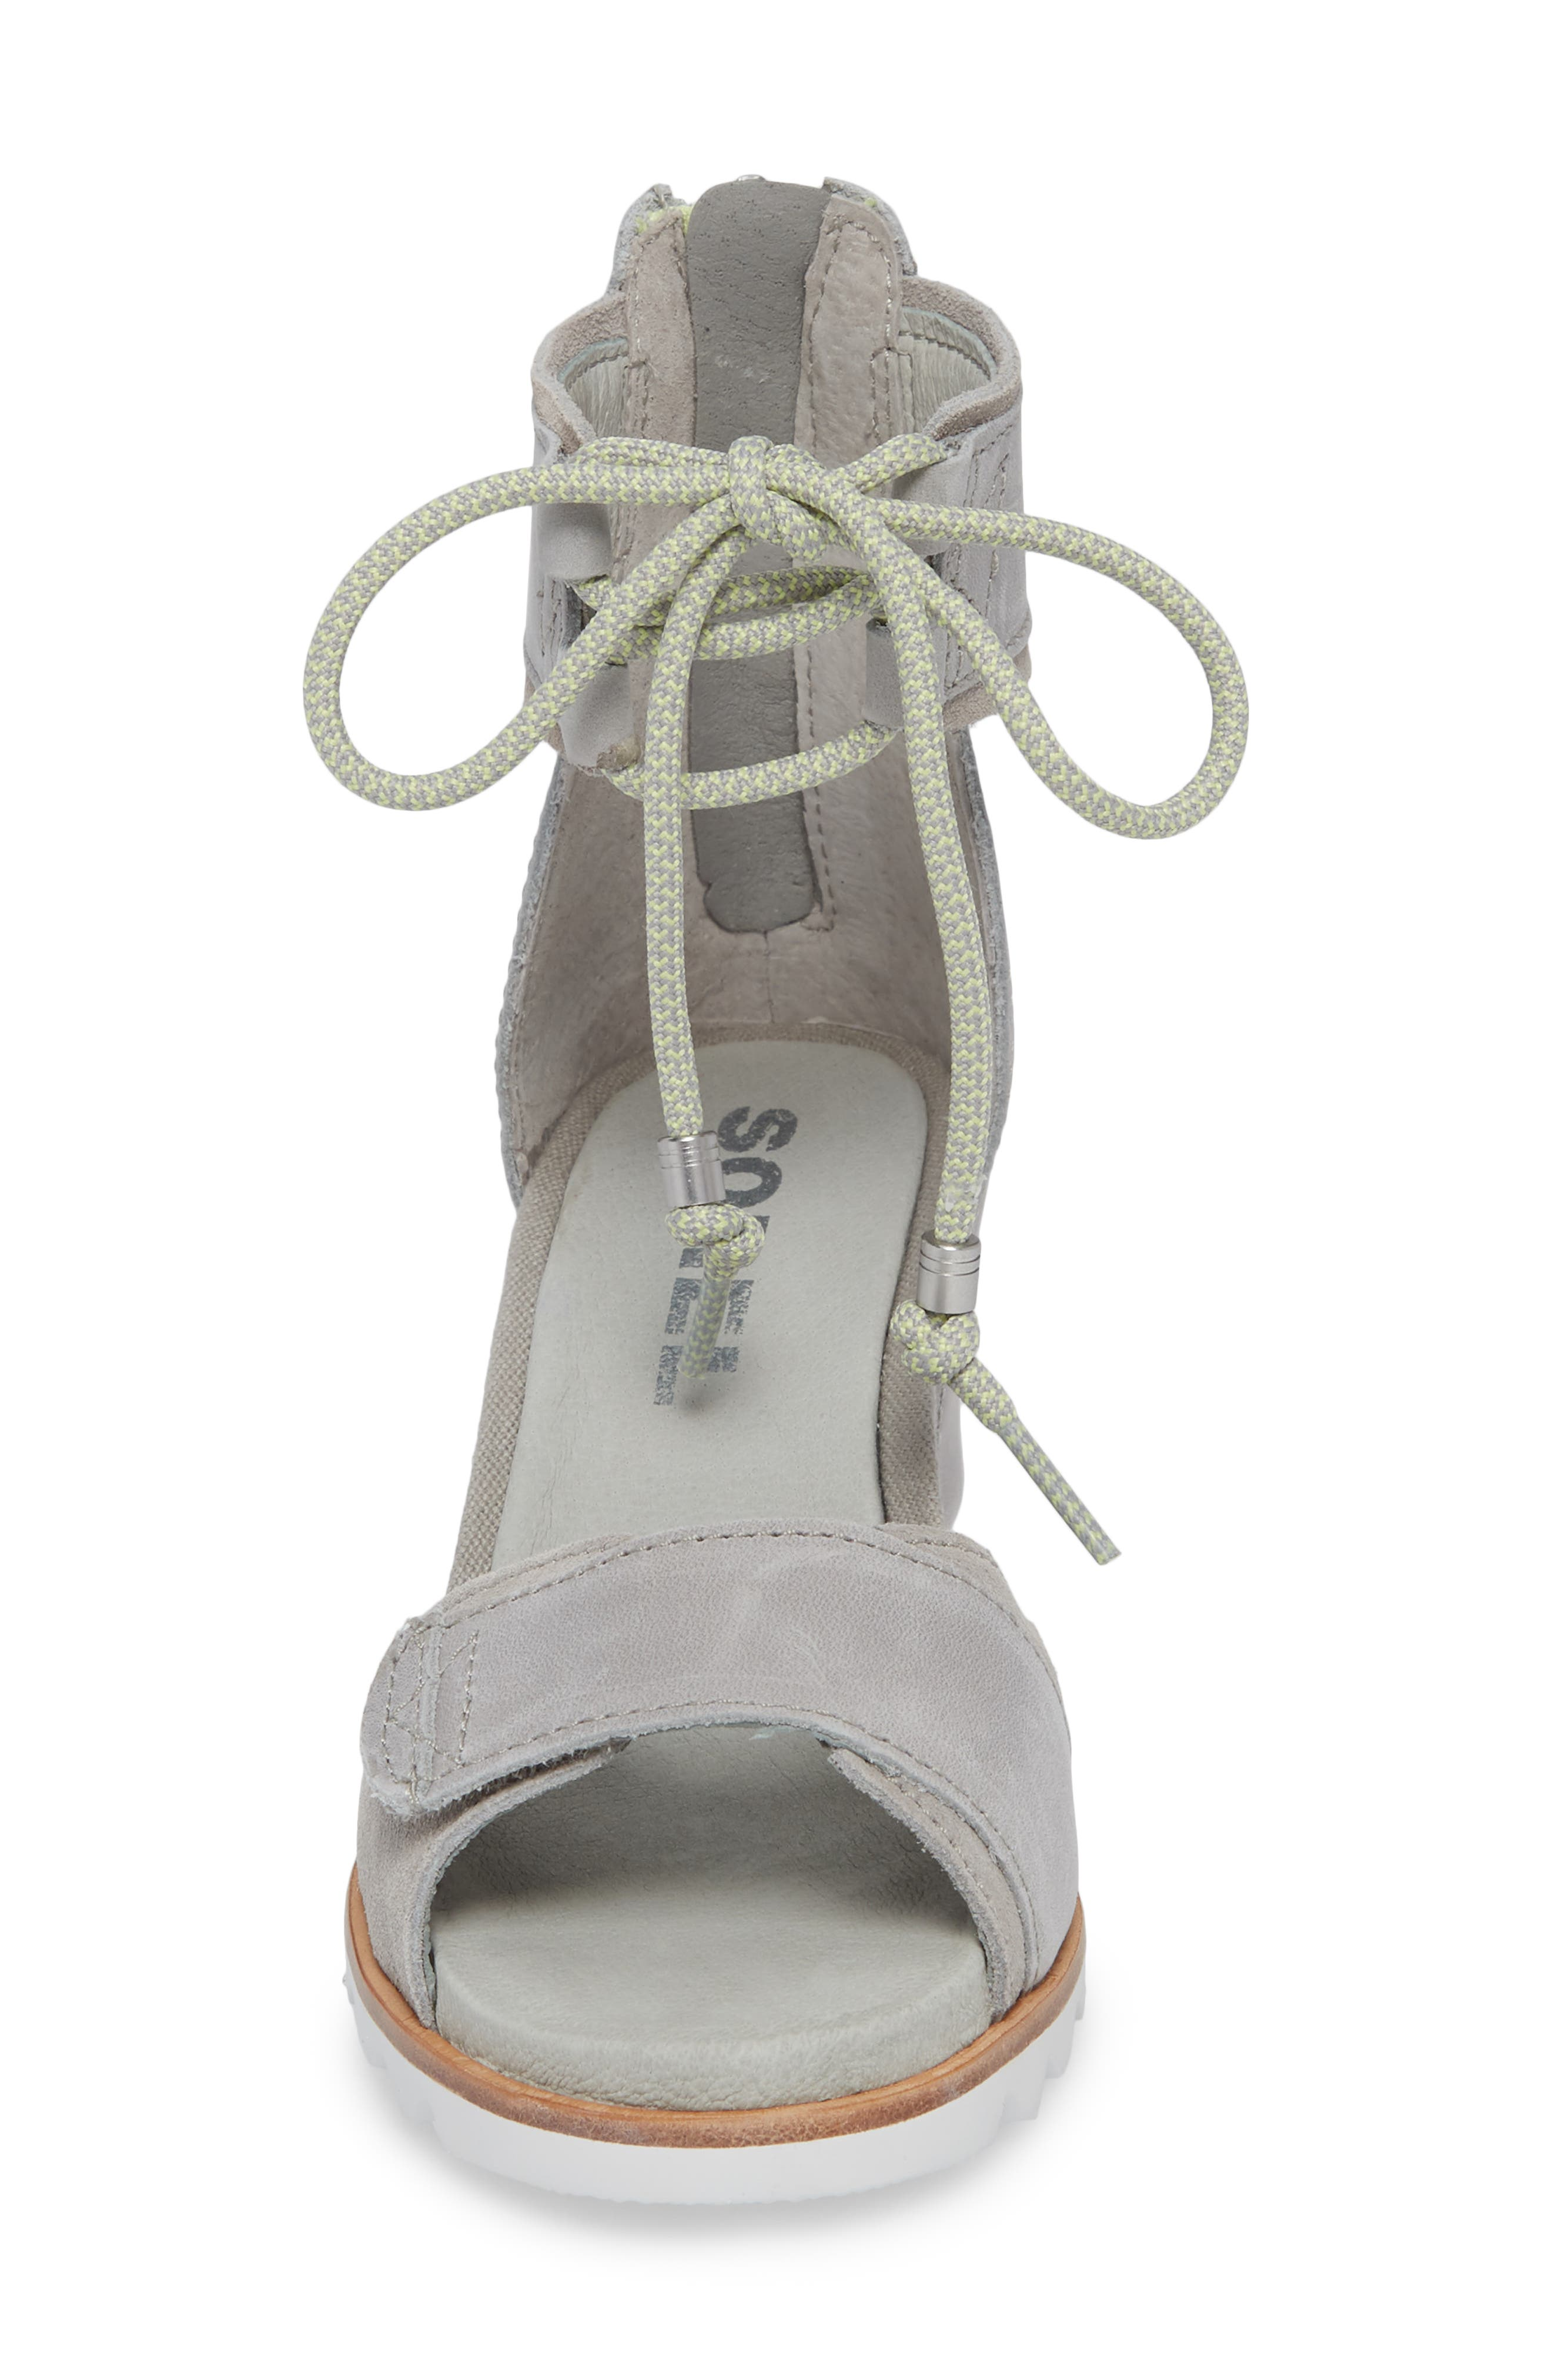 Joanie Cuff Wedge Sandal,                             Alternate thumbnail 4, color,                             Dove